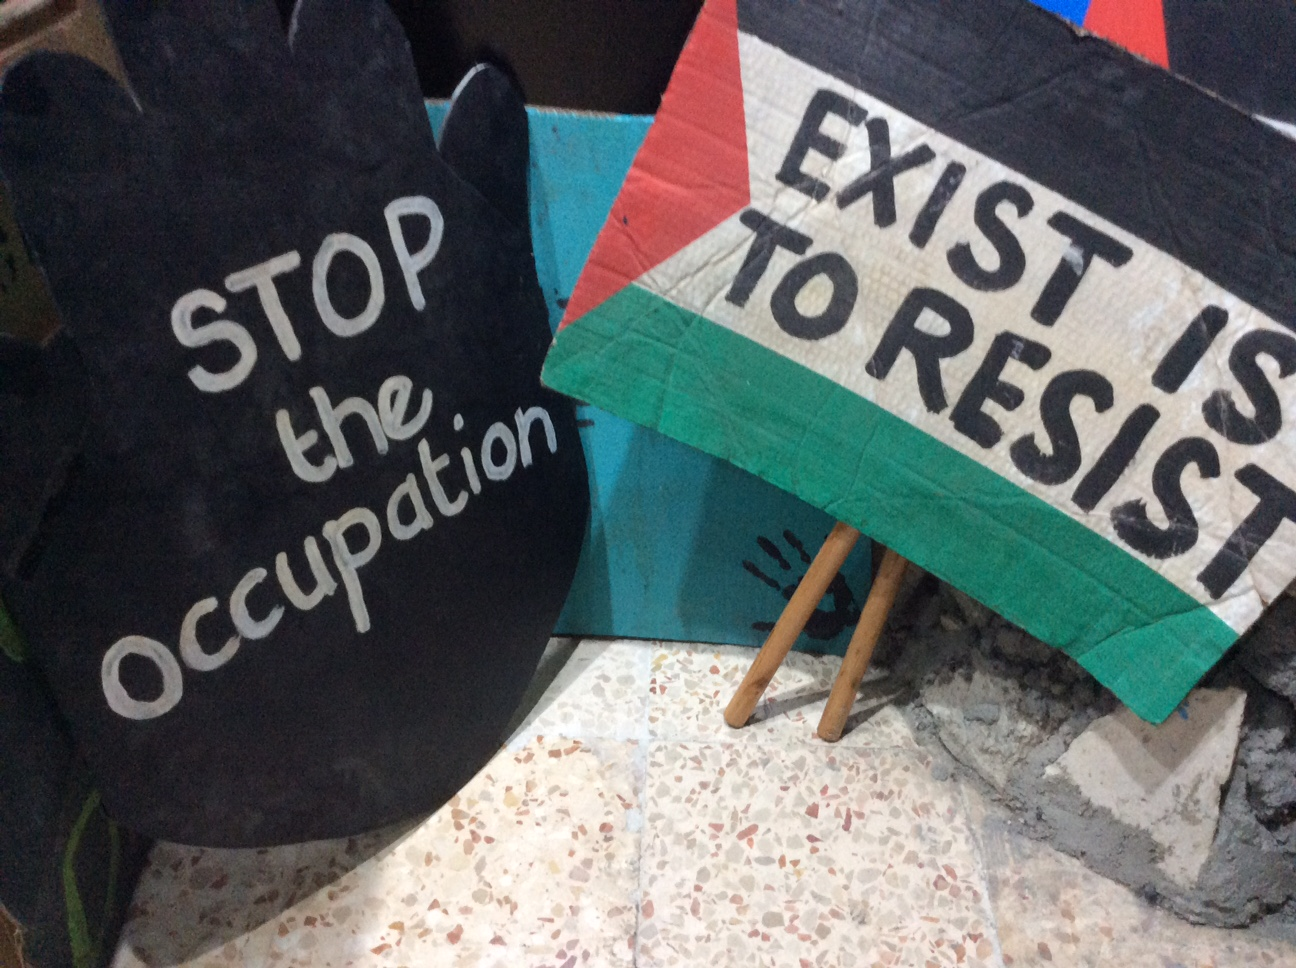 Protest signs on display at the Banksy Museum at the Walled Off Hotel in Bethlehem.